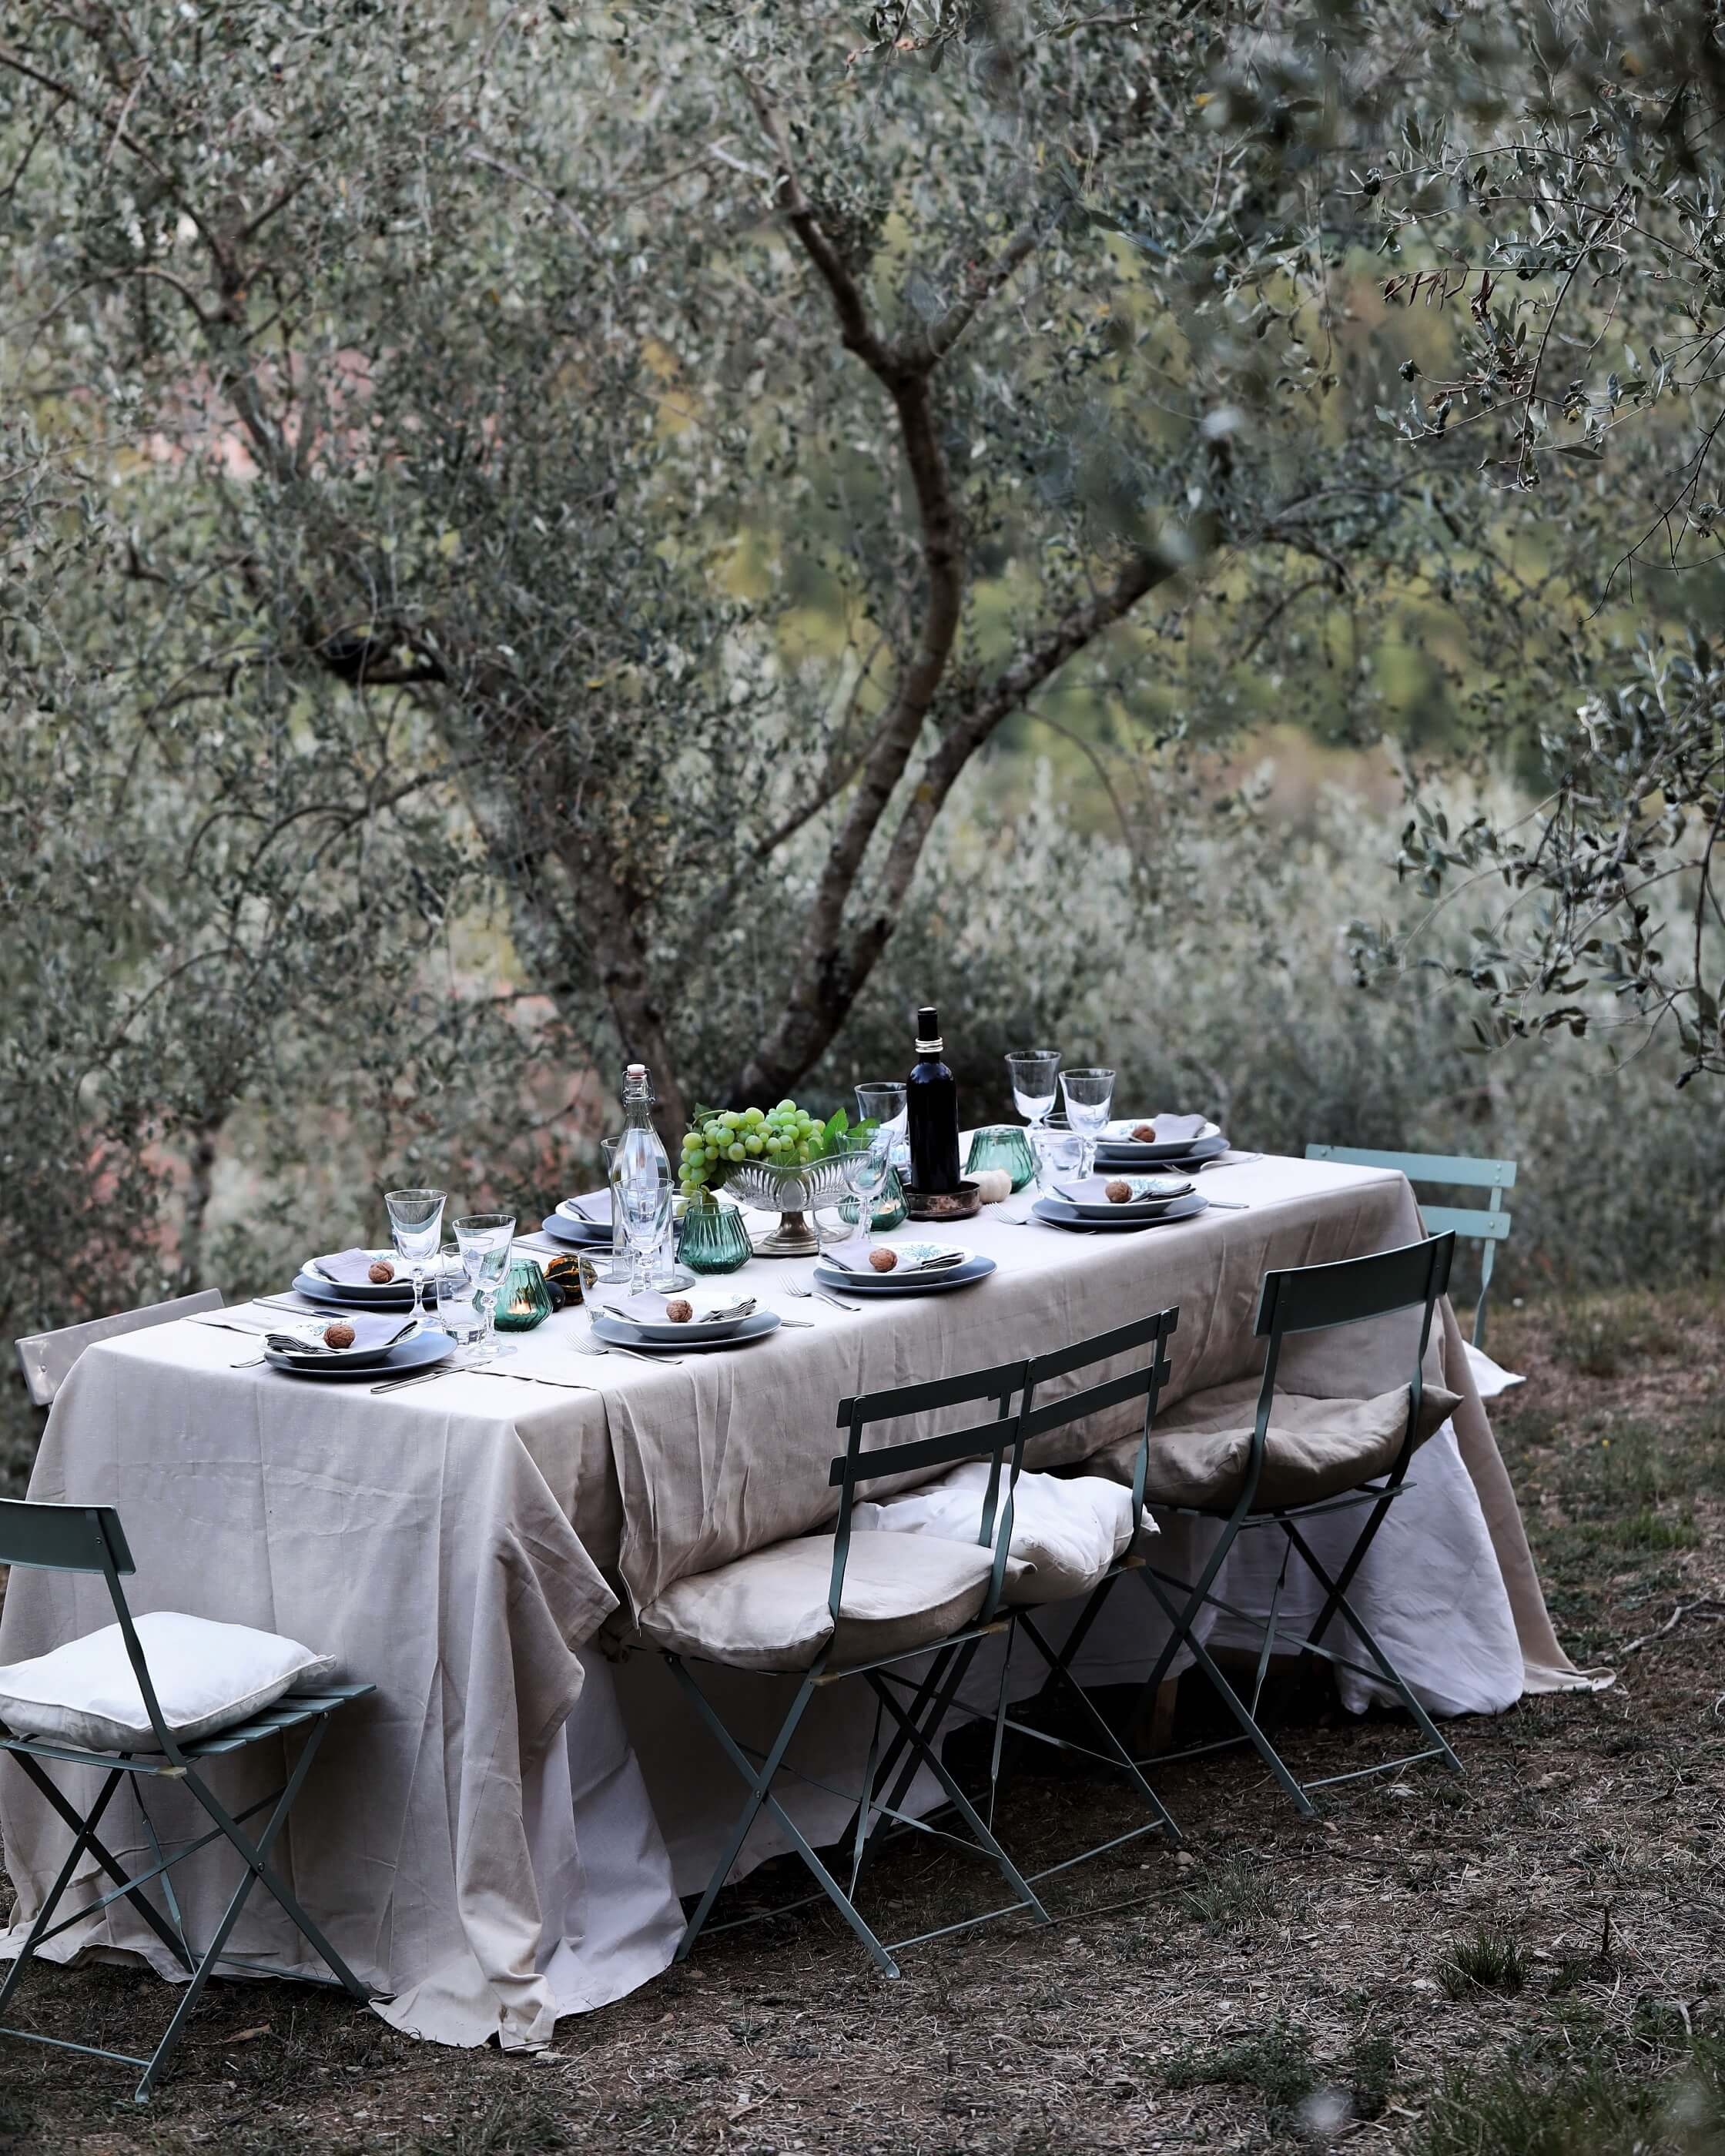 TUSCANY / ITALY October 23rd-28th 2019  'A FALL HARVEST GATHERING' | 5-day Food, Cooking, Harvest, Fall feasts, Exploration & Photography Retreat